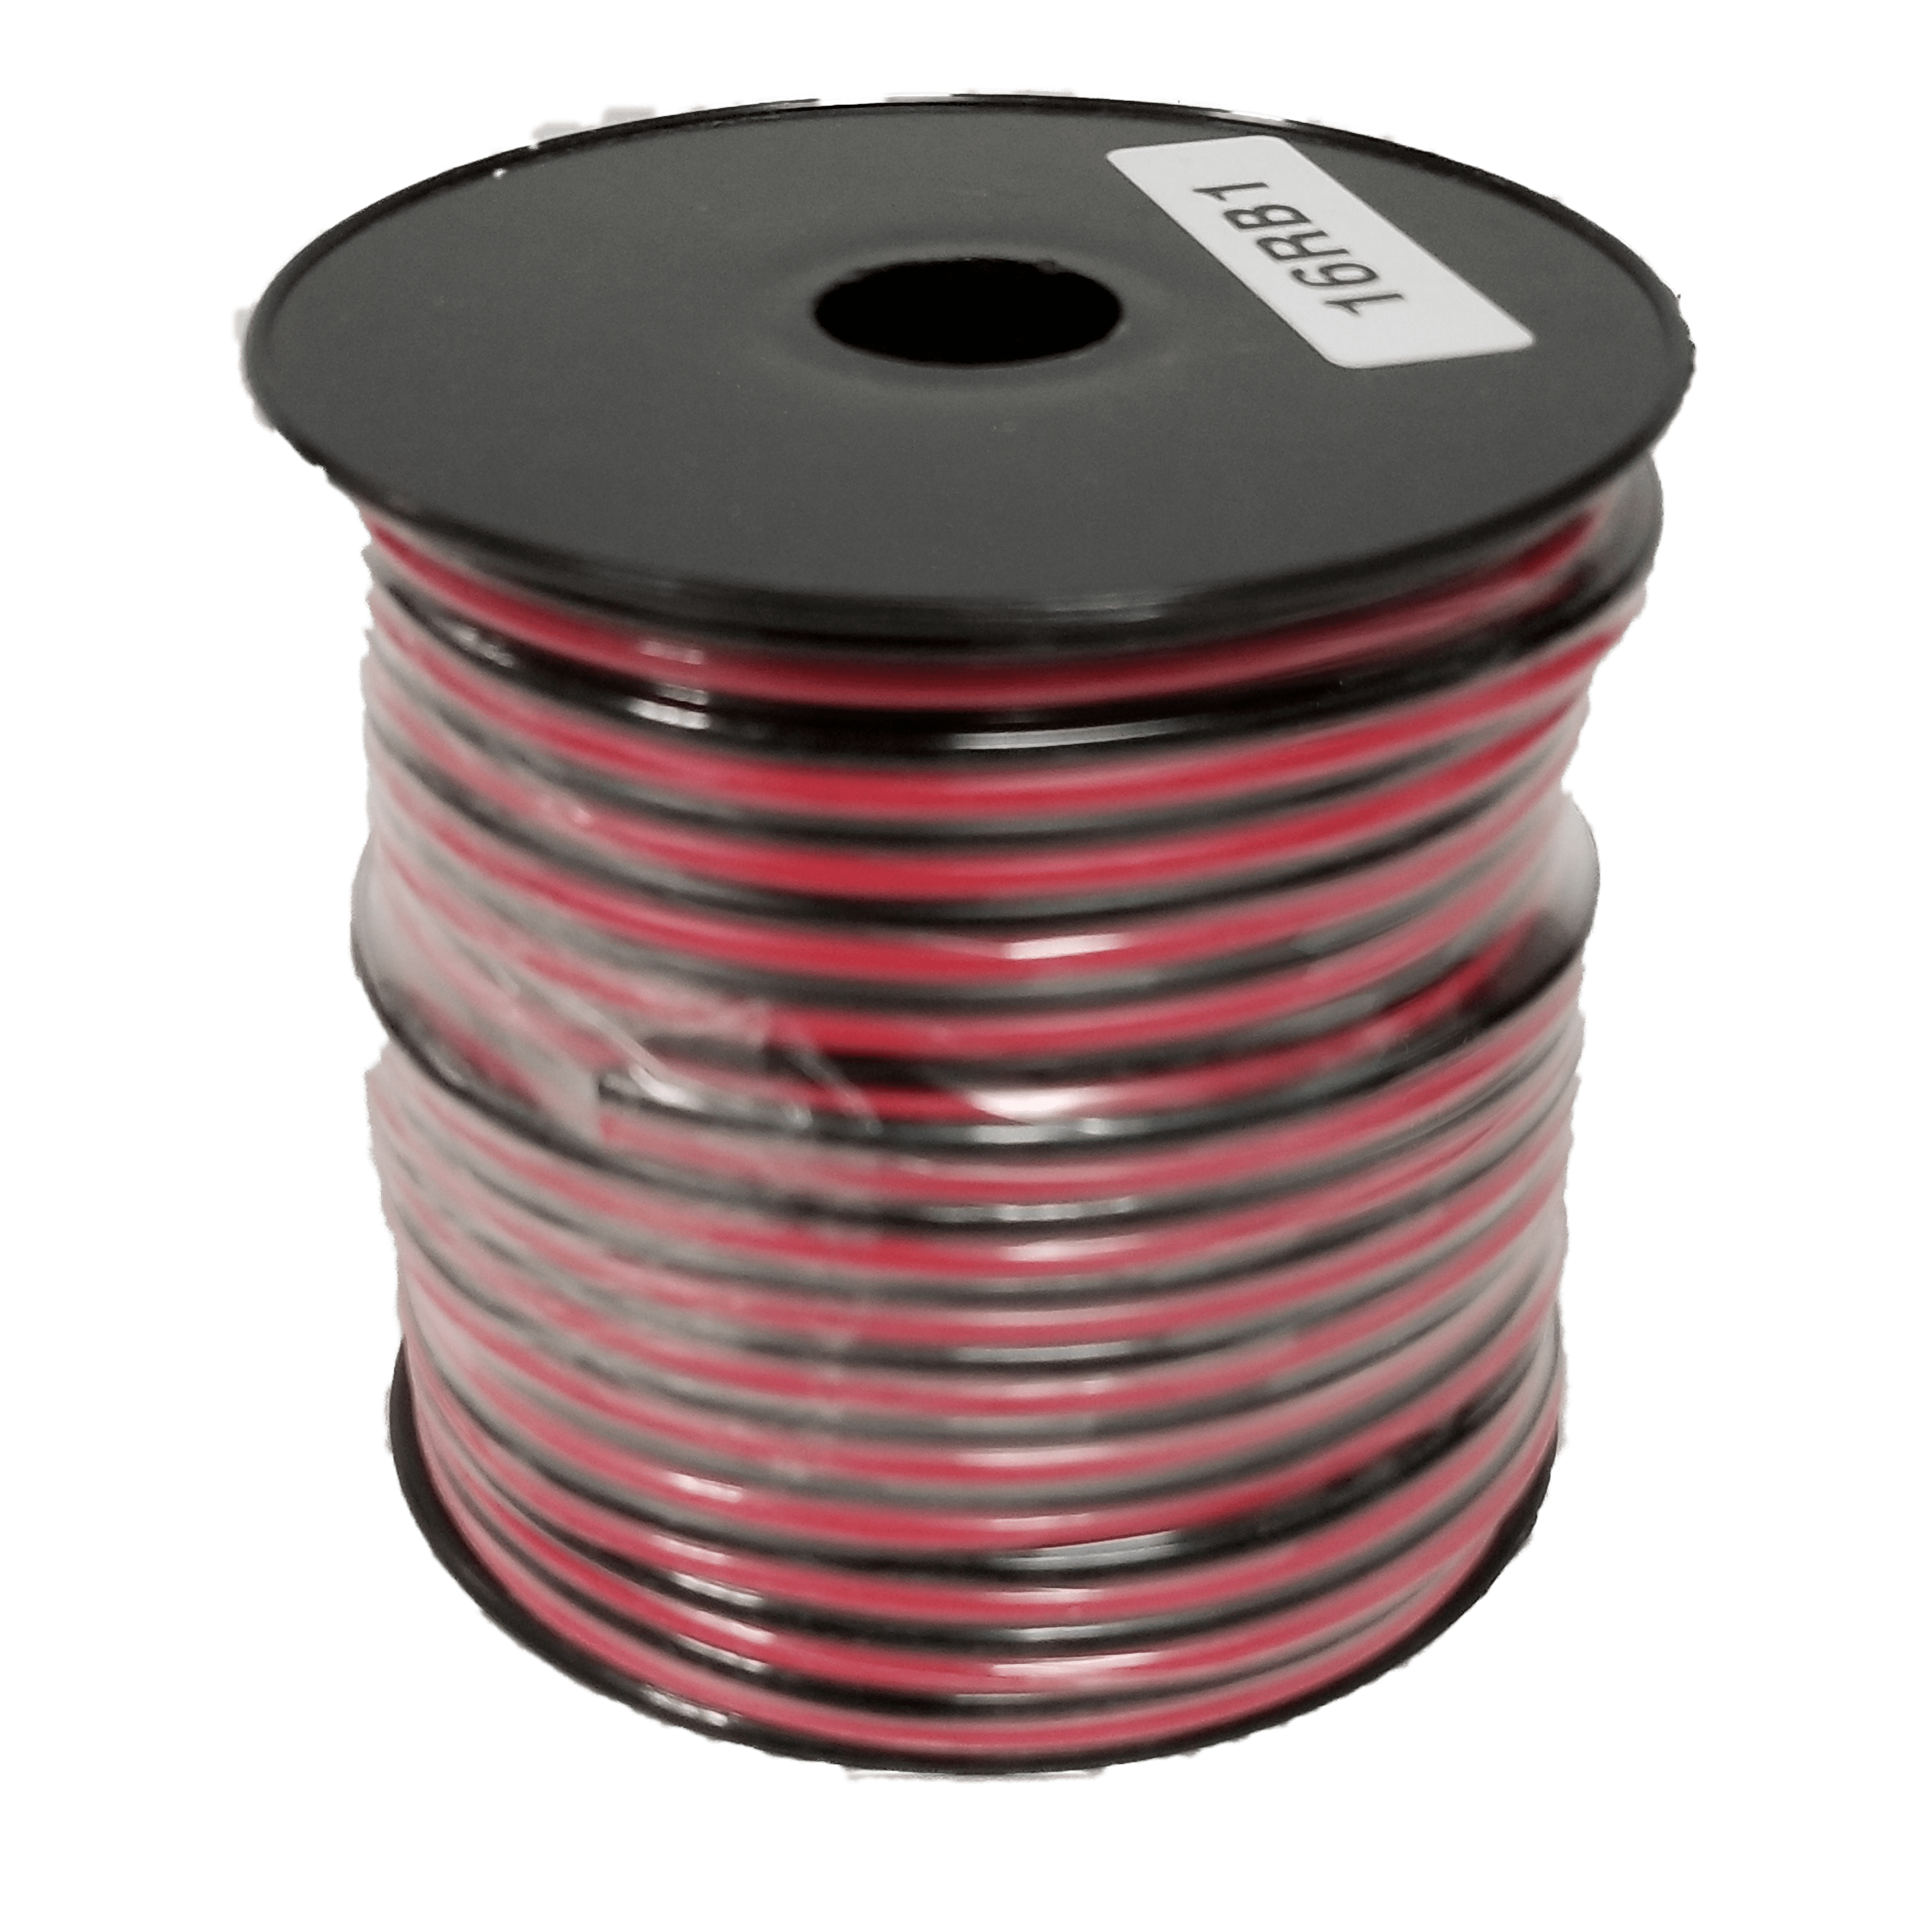 16RB1 - Twinpoint 16 Gauge Zip Wire (Red/Black) 100 Ft Spool